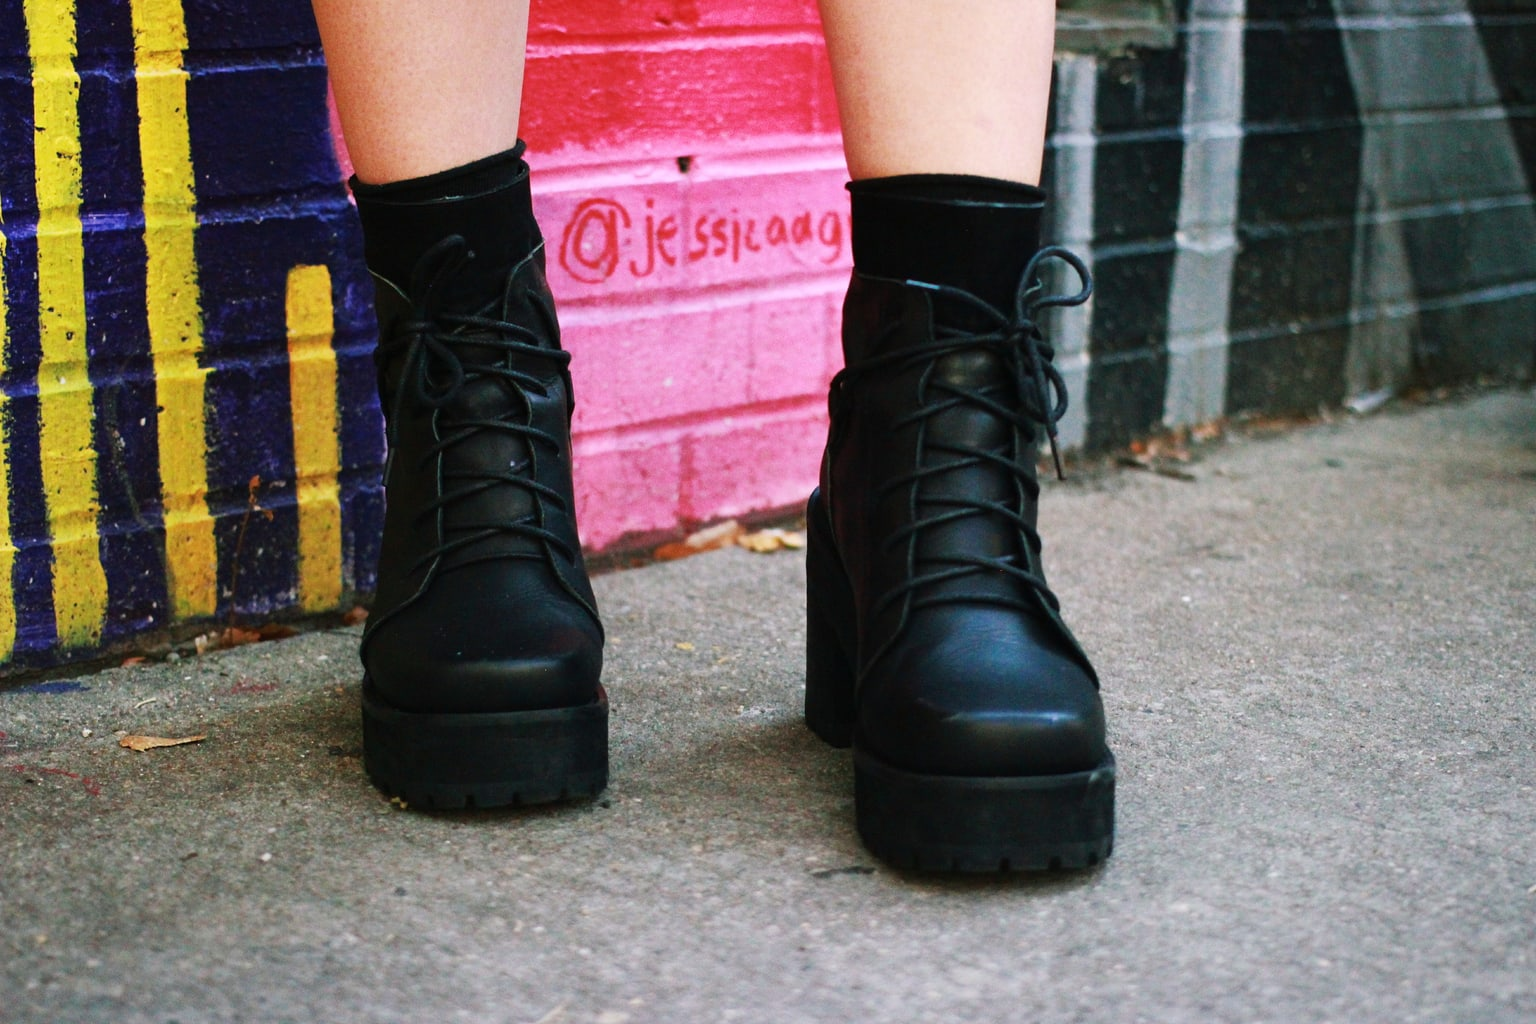 Chunky punk black lace-up boots add to this Fashion Institute of Technology student's overall attire.